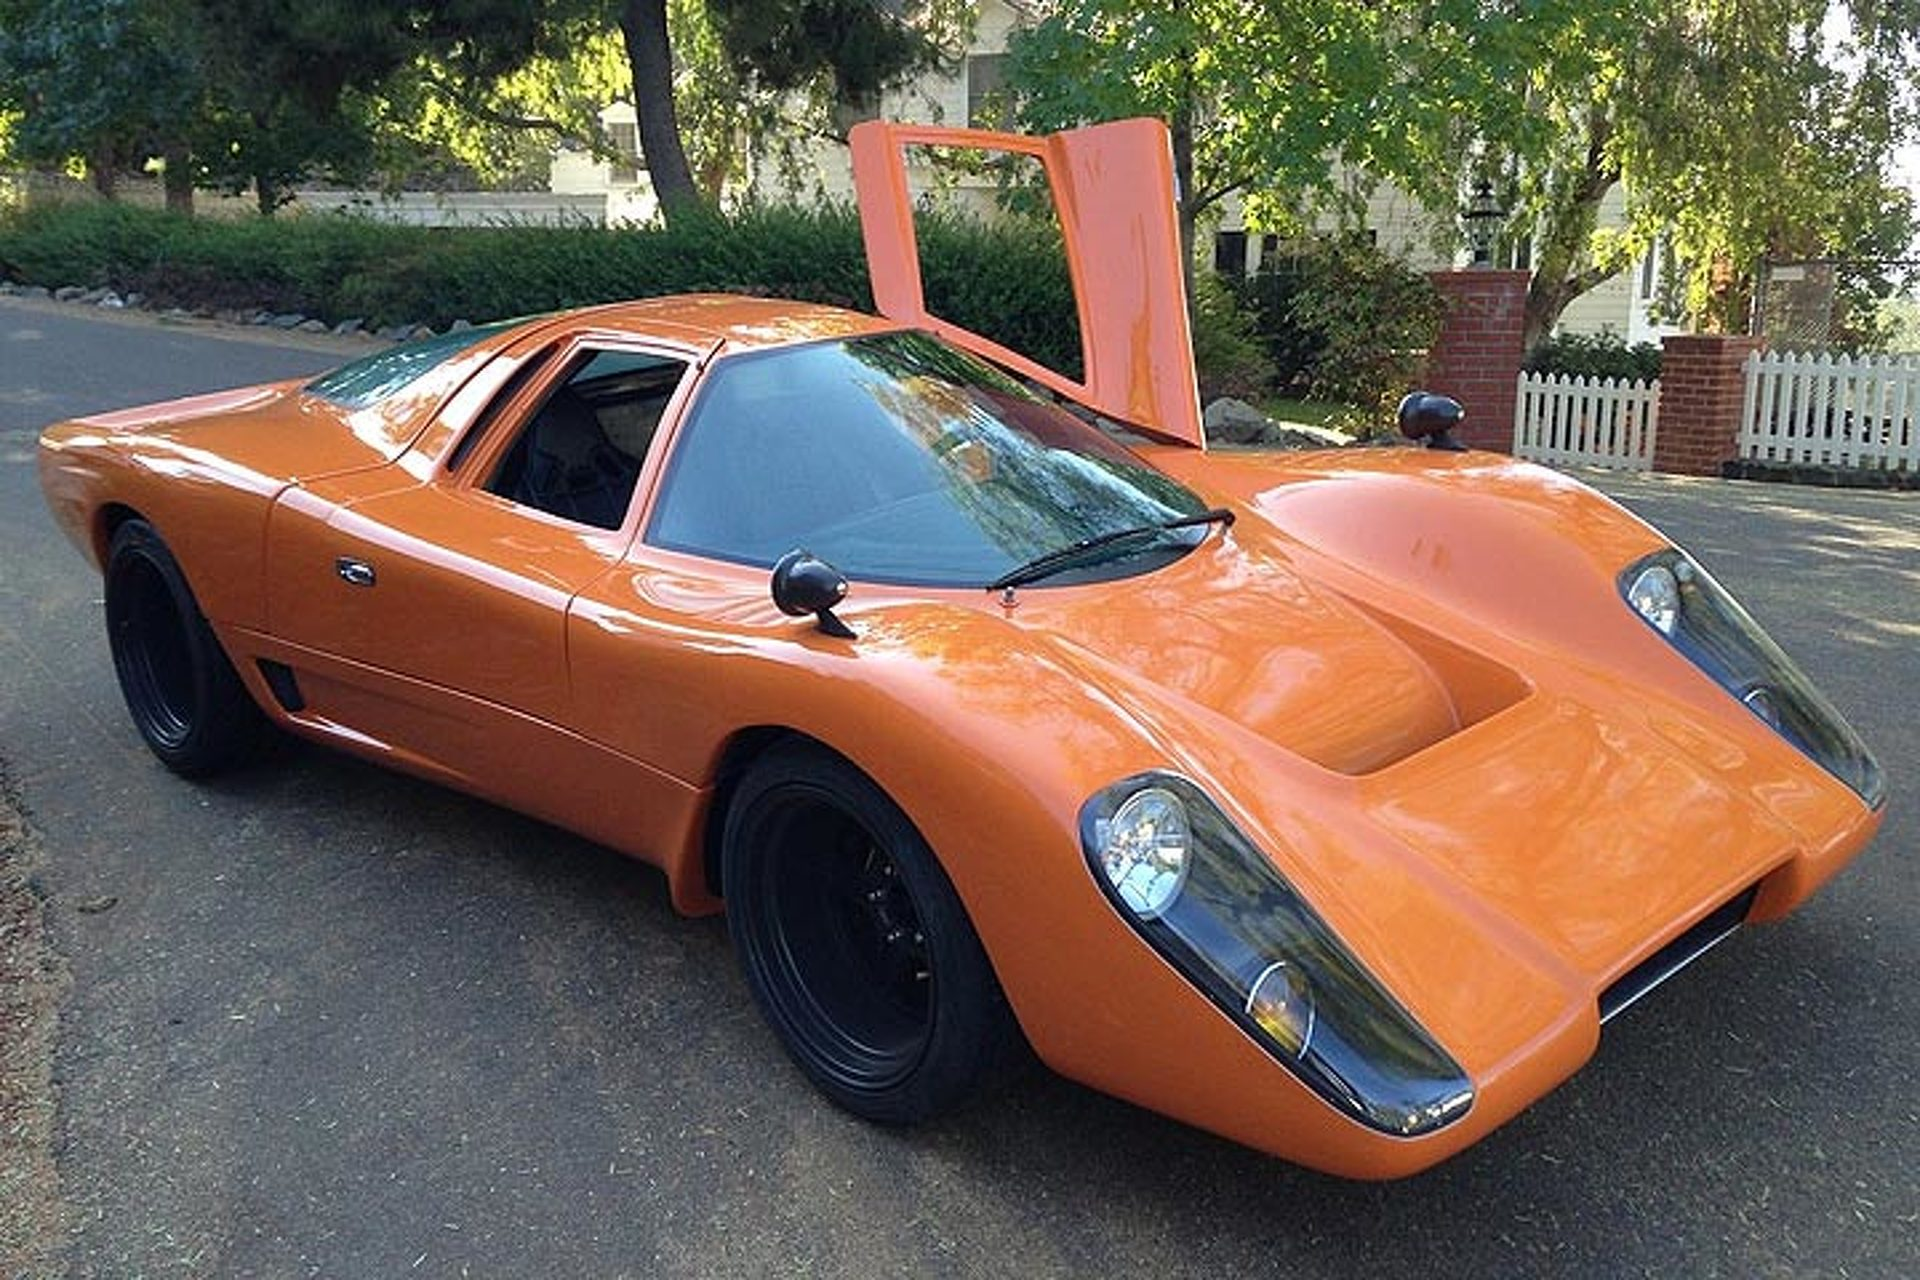 Looking to Buy a Rare McLaren? This Manta Montage is the Next Best Thing